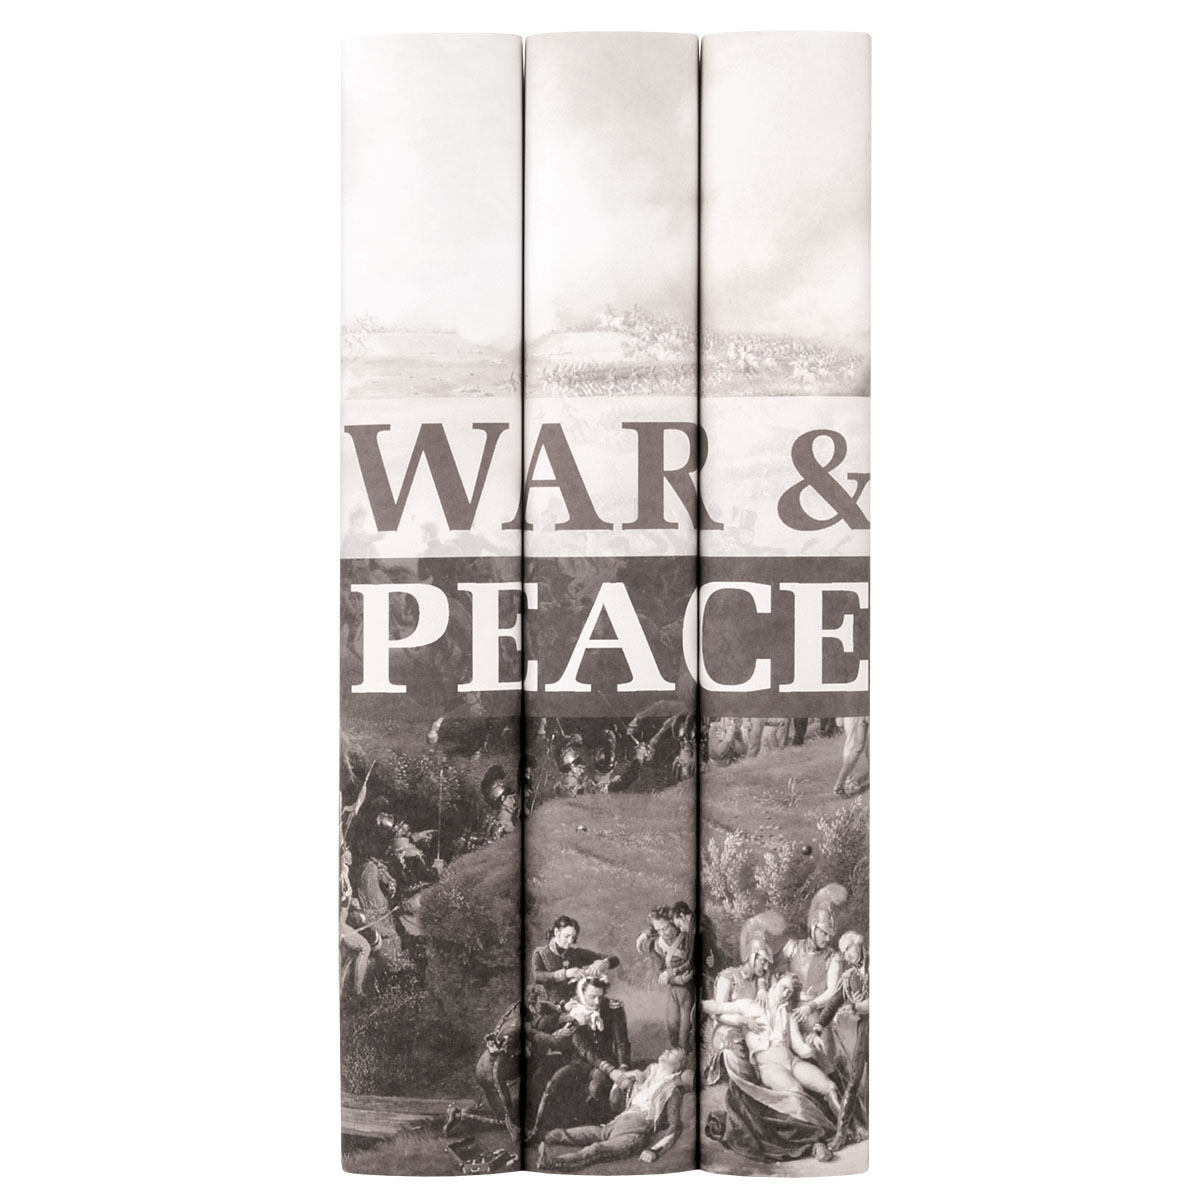 Tolstoy's War and Peace